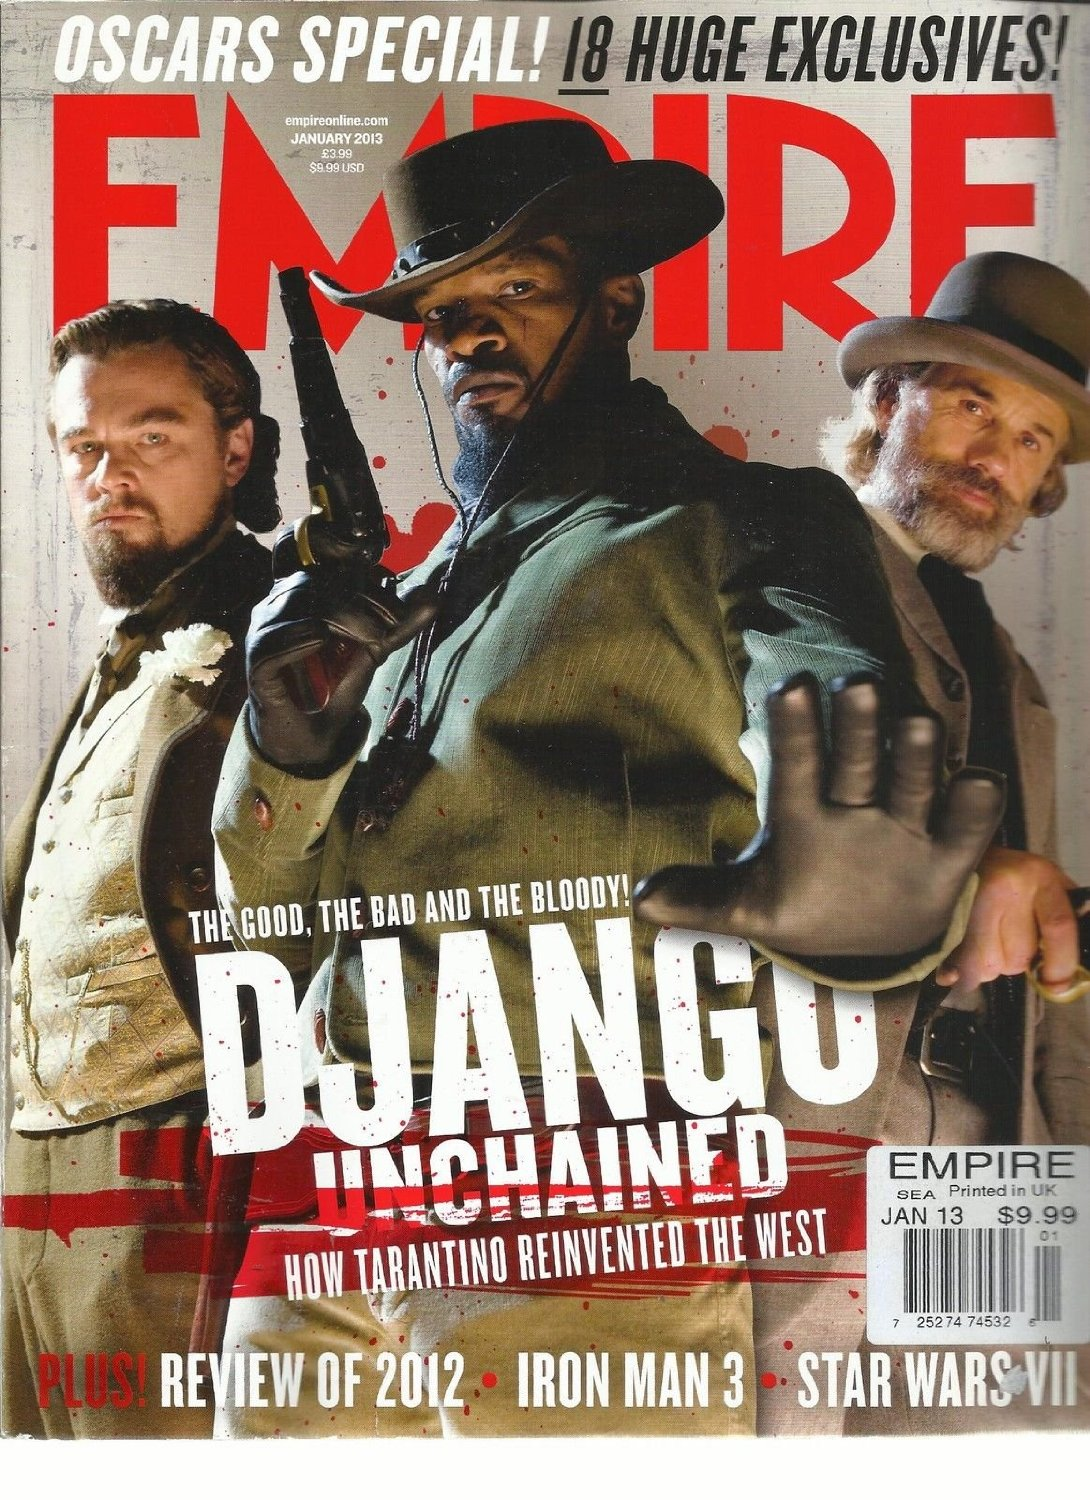 EMPIRE, JANUARY, 2013 ( OSCARS SPECIAL ! * 18 HUGE EXCLUSIVES !) REVIEW OF 2012